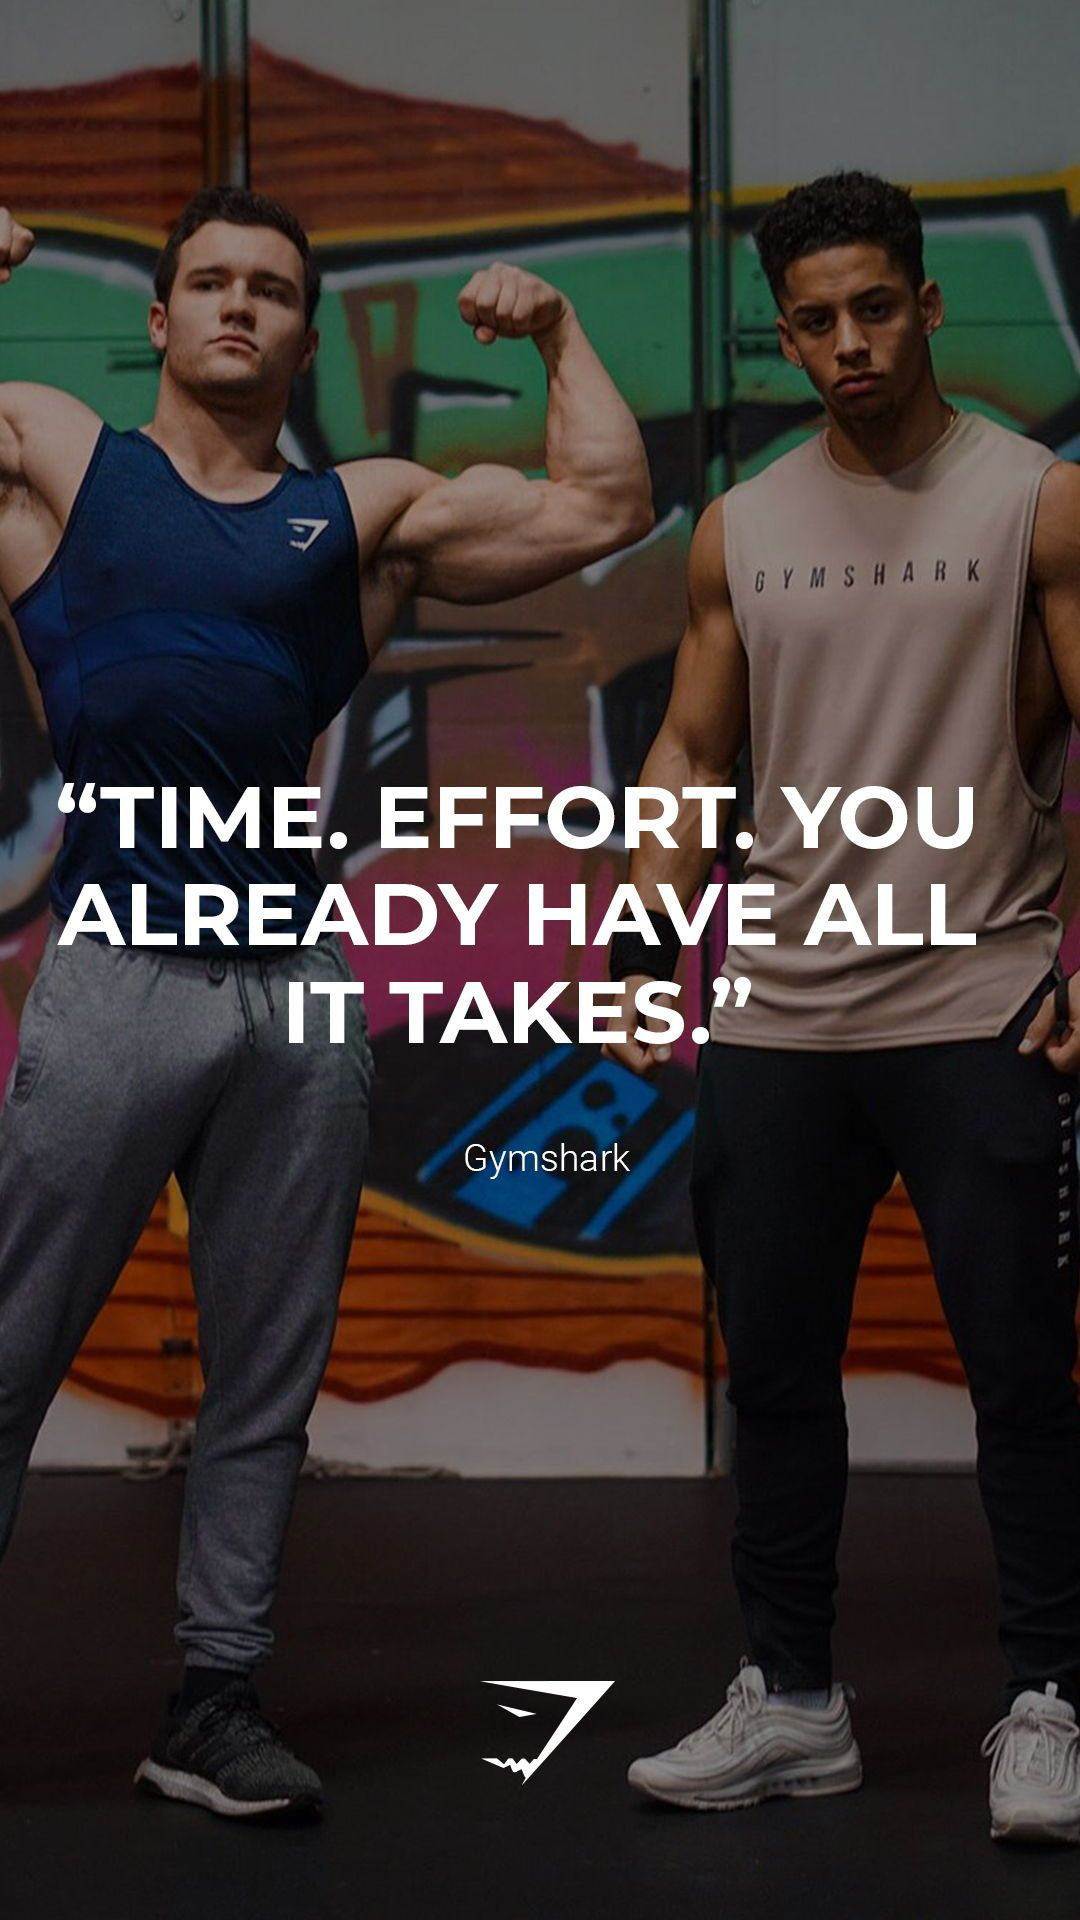 """Time. Effort. You already have all it takes."" - Gymshark. Save this to your motivational board for..."